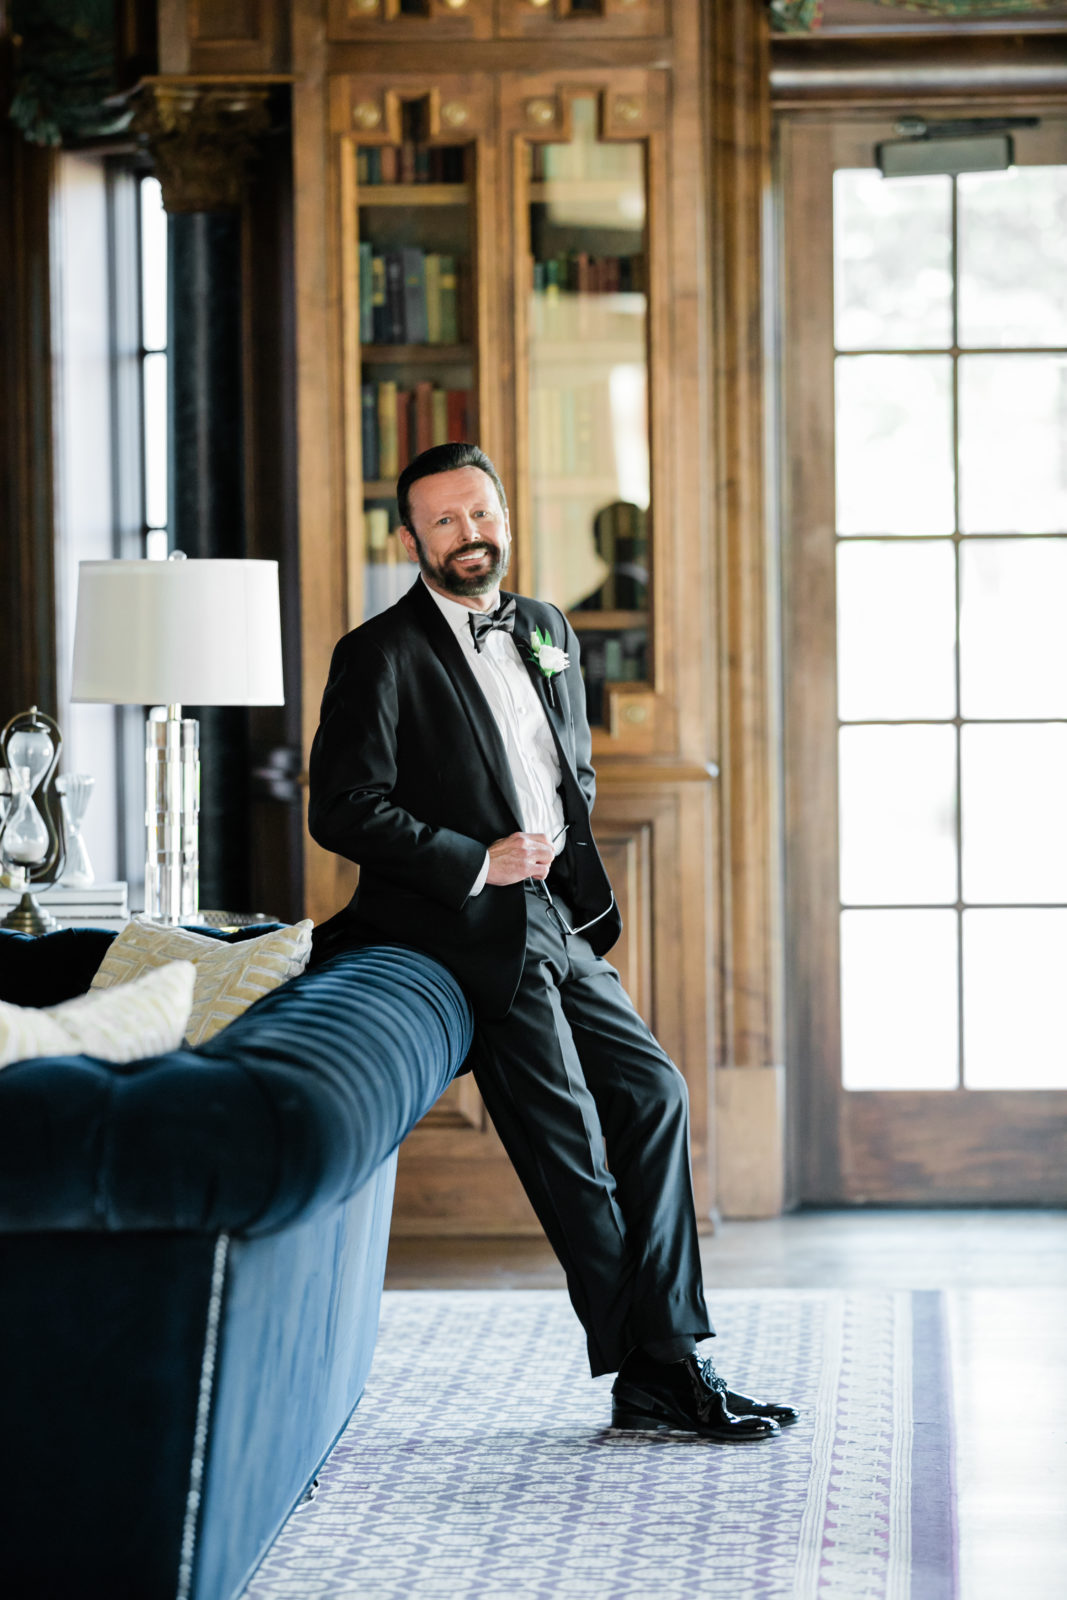 Generation Tux Tuxedo: Sophisticated and Chic wedding inspiration on Alexa Kay Events